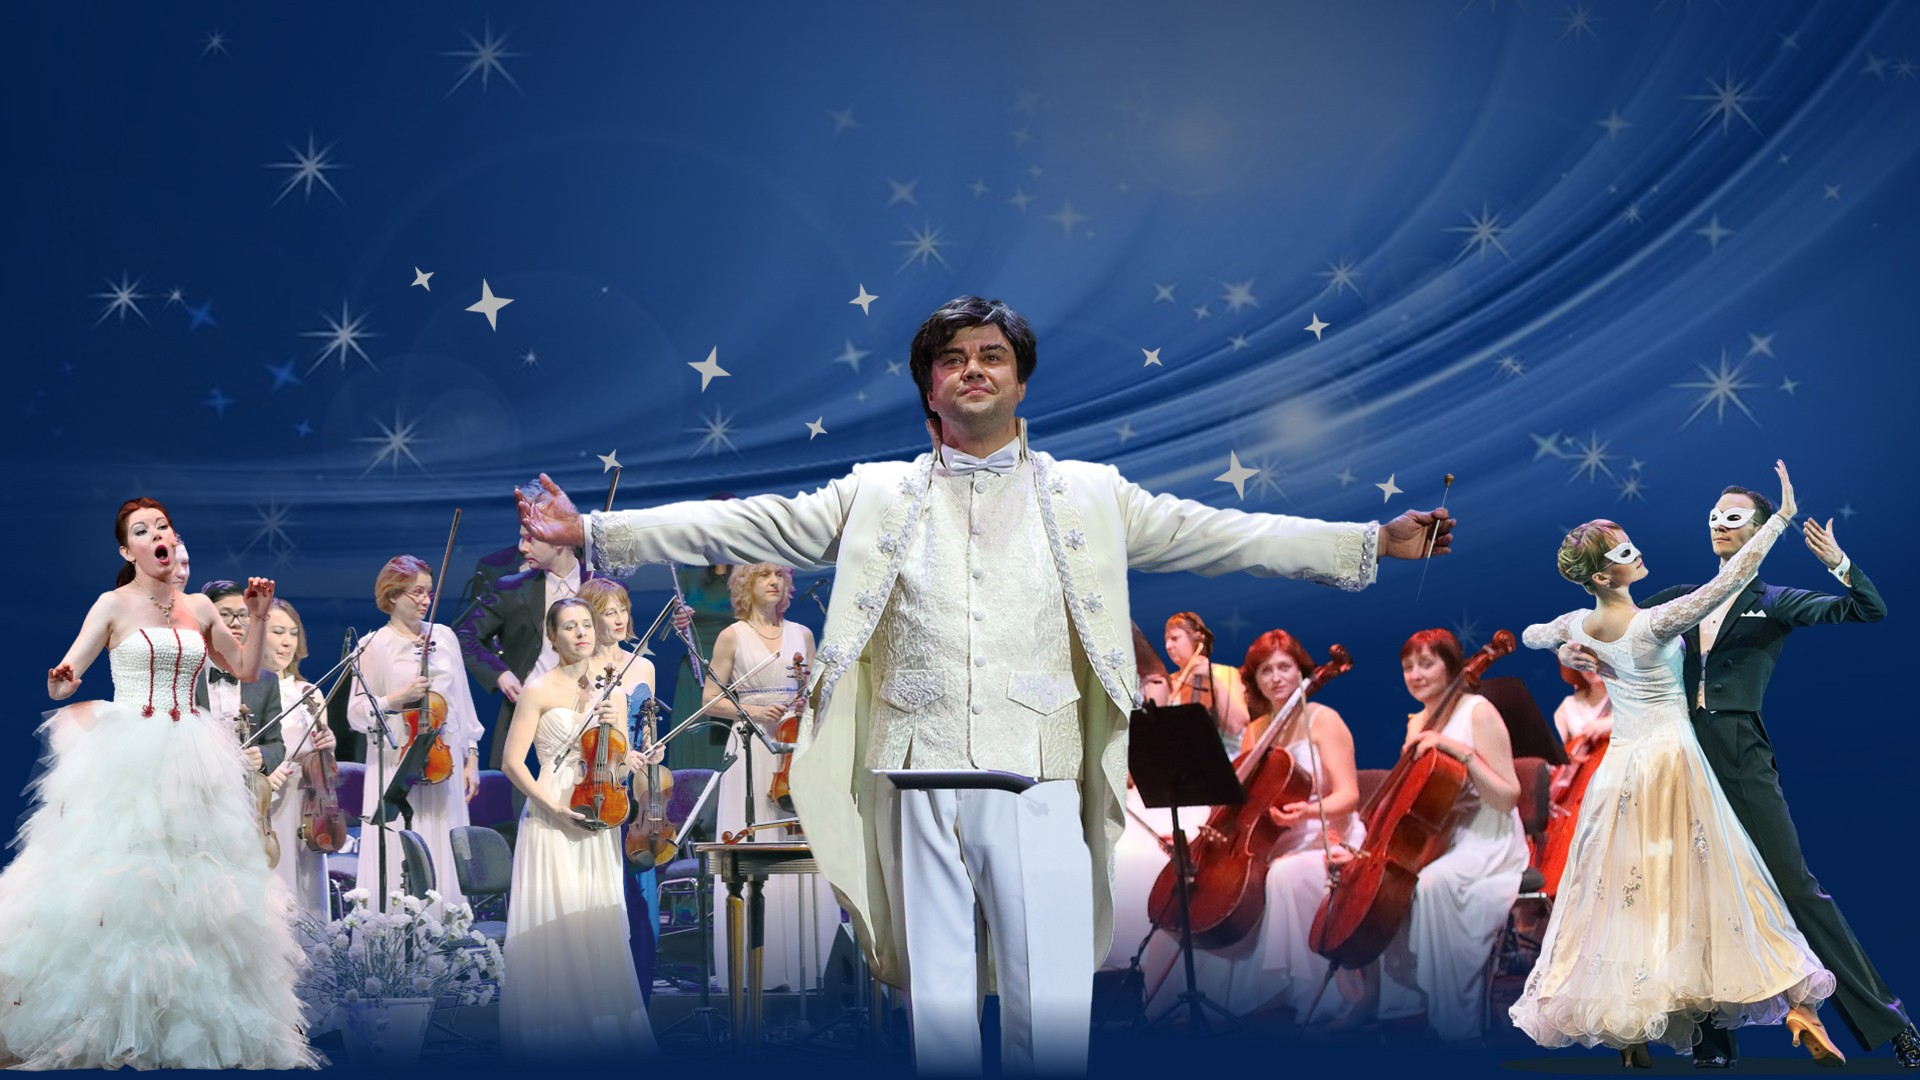 Johann Strauss Snow-White Ball (rescheduled from December 18)